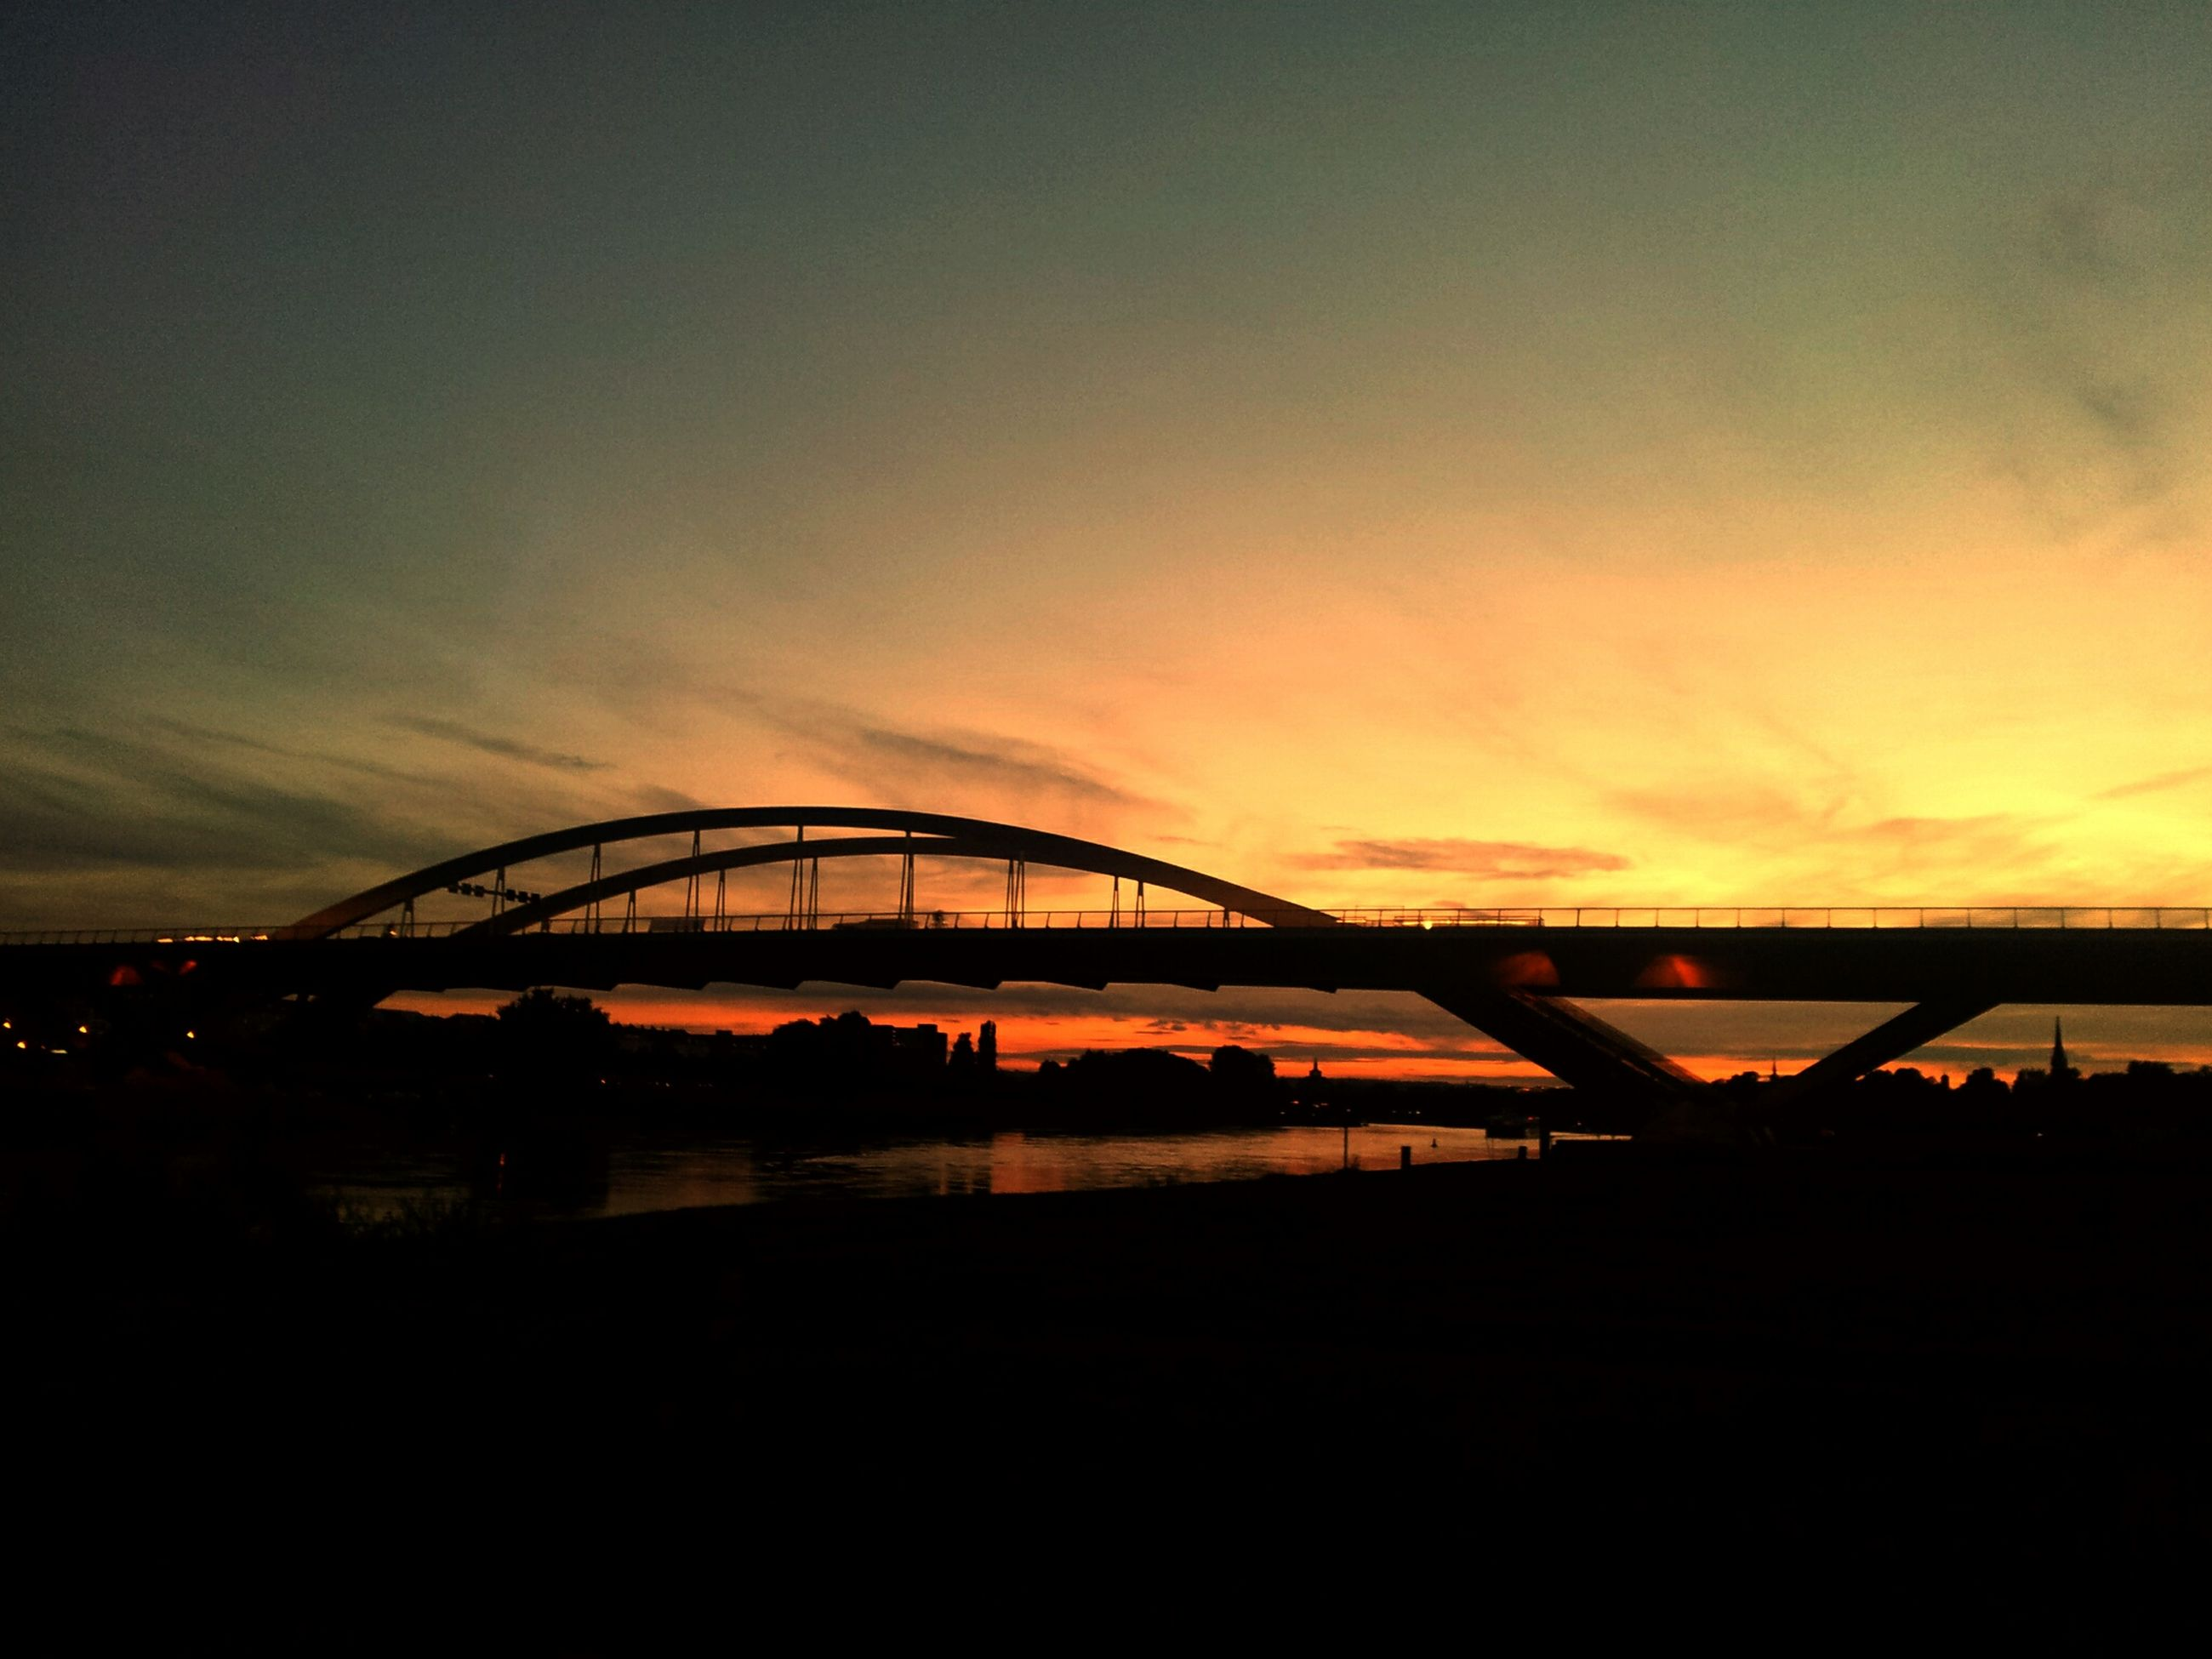 sunset, silhouette, connection, sky, bridge - man made structure, orange color, built structure, architecture, cloud - sky, bridge, engineering, river, sun, nature, scenics, dusk, cloud, tranquility, beauty in nature, no people